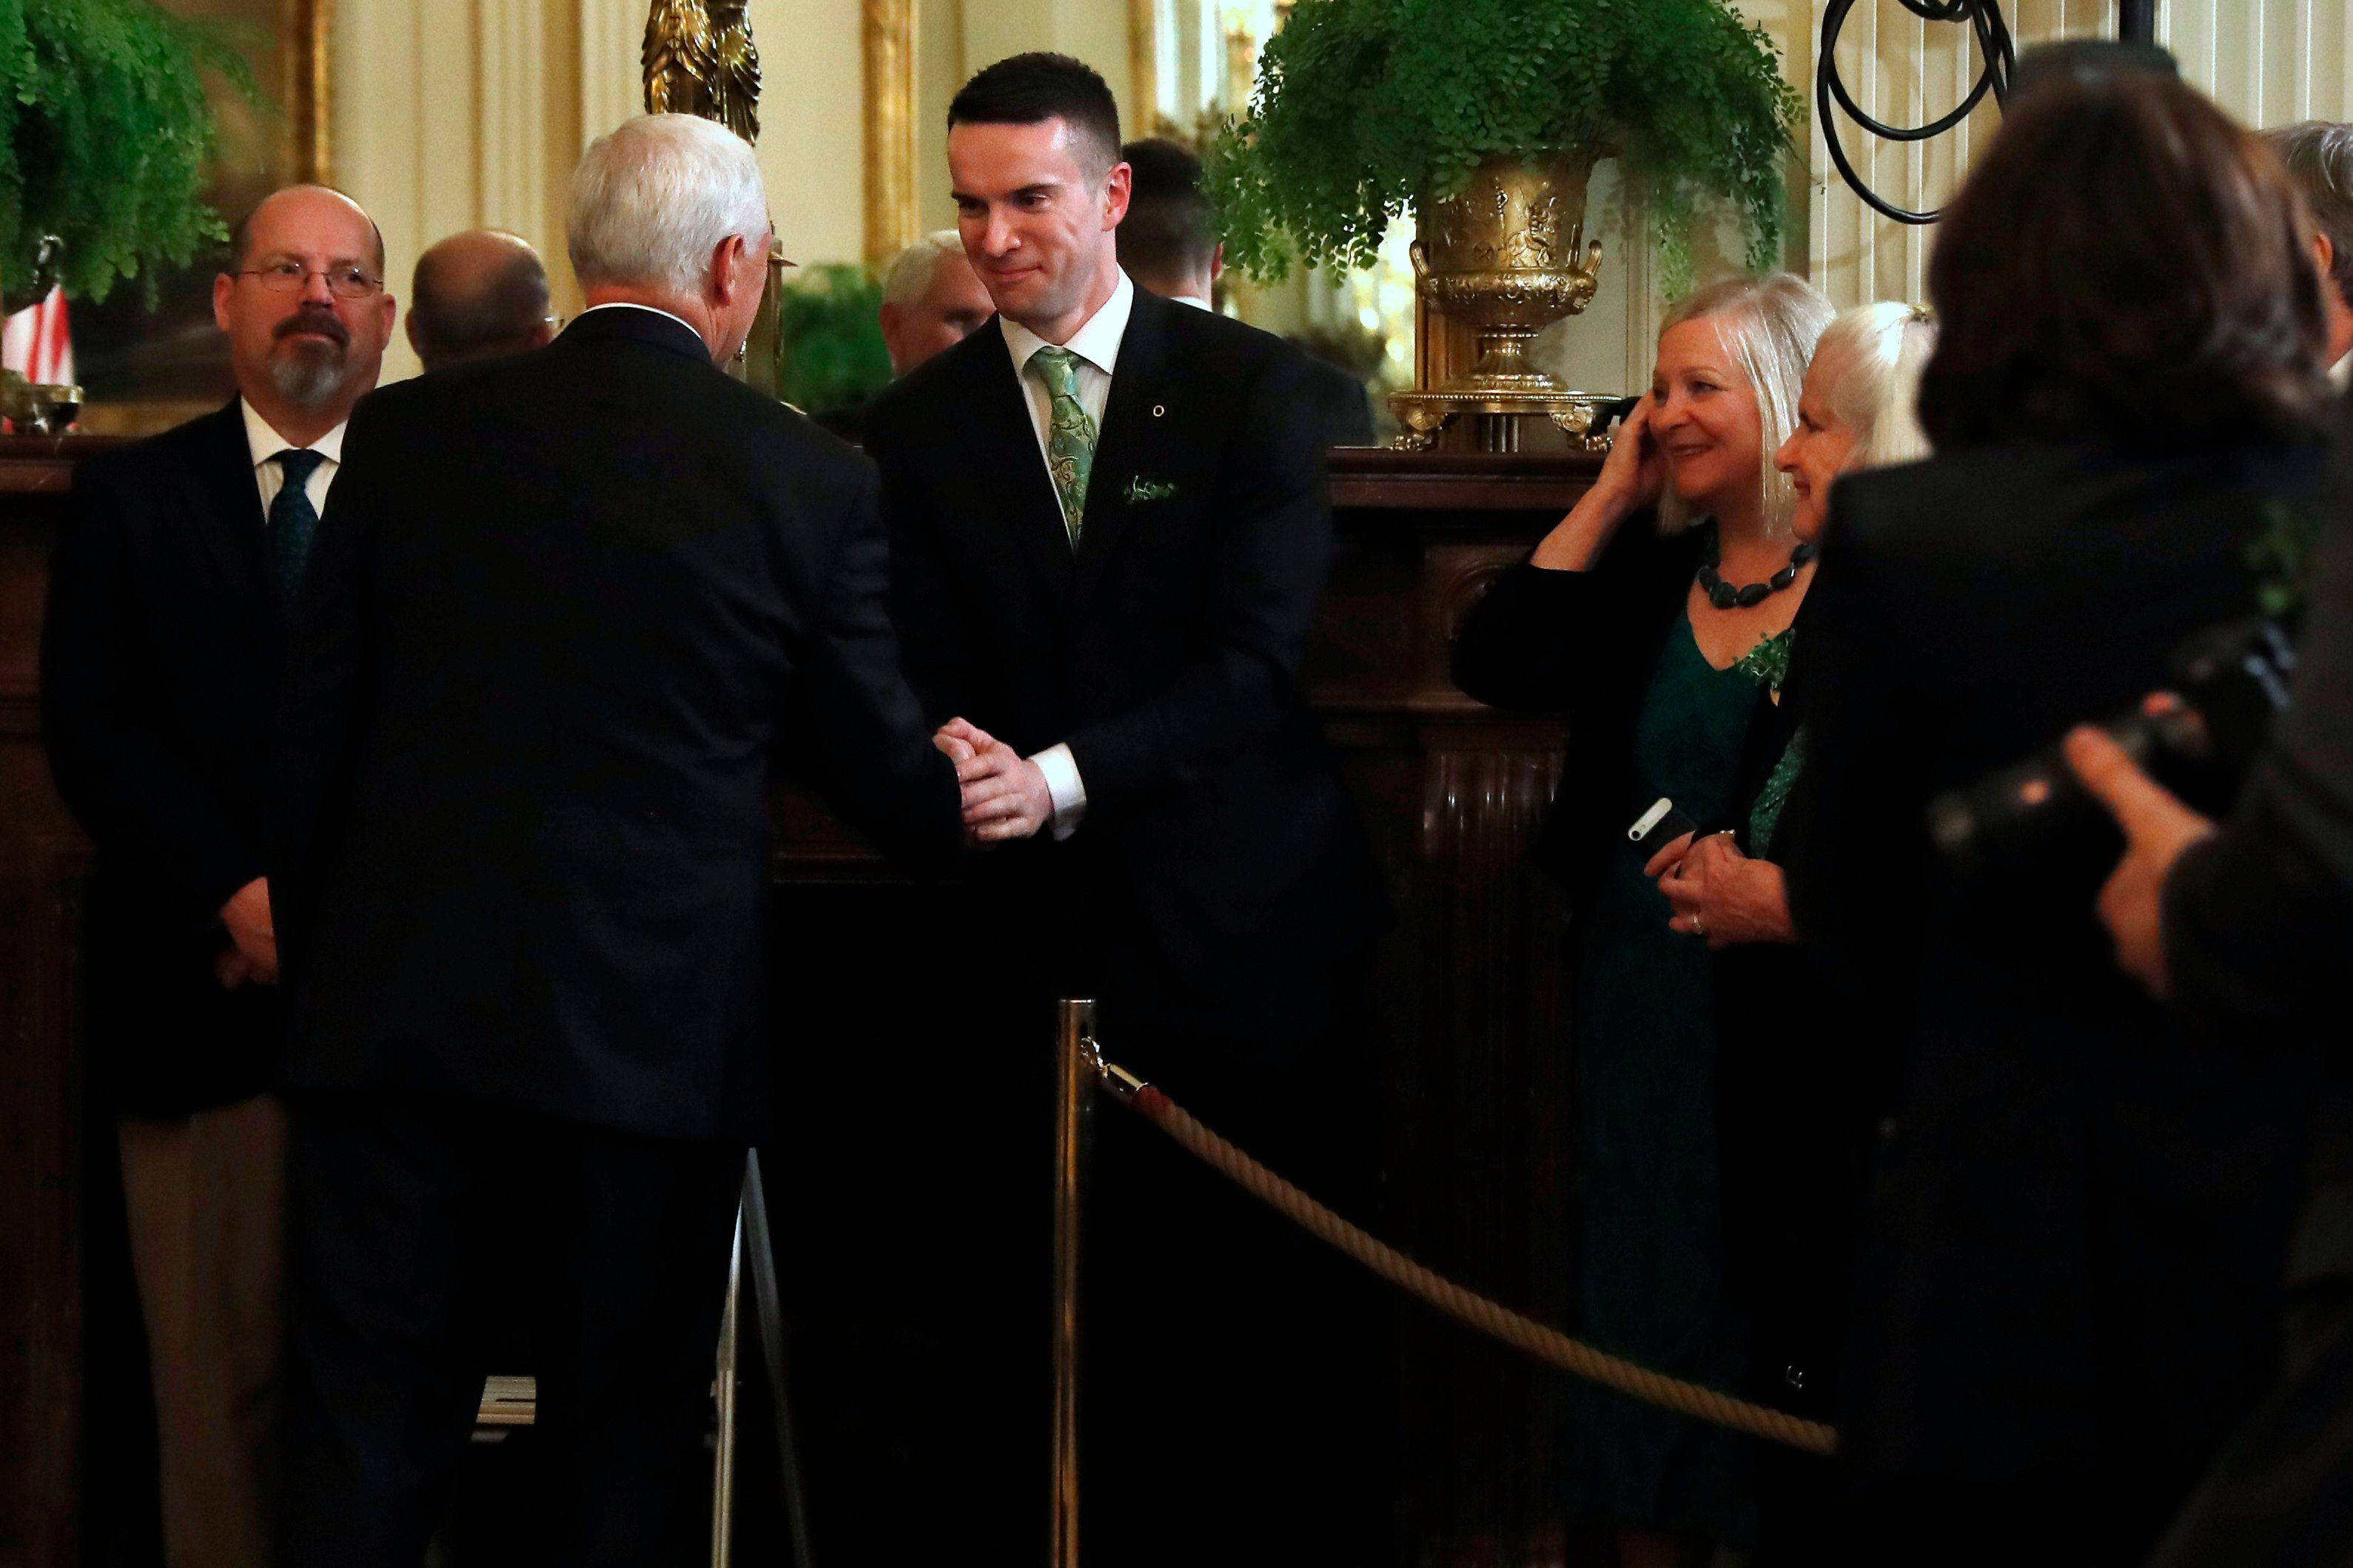 The partner of Irish Prime Minister Leo Varadkar, Matt Barrett, center, shakes hands with Vice President Mike Pence, Thursday, March 14, 2019, after the annual presentation of a bowl of shamrocks in the East Room of the White House in Washington. (AP Photo/Jacquelyn Martin)